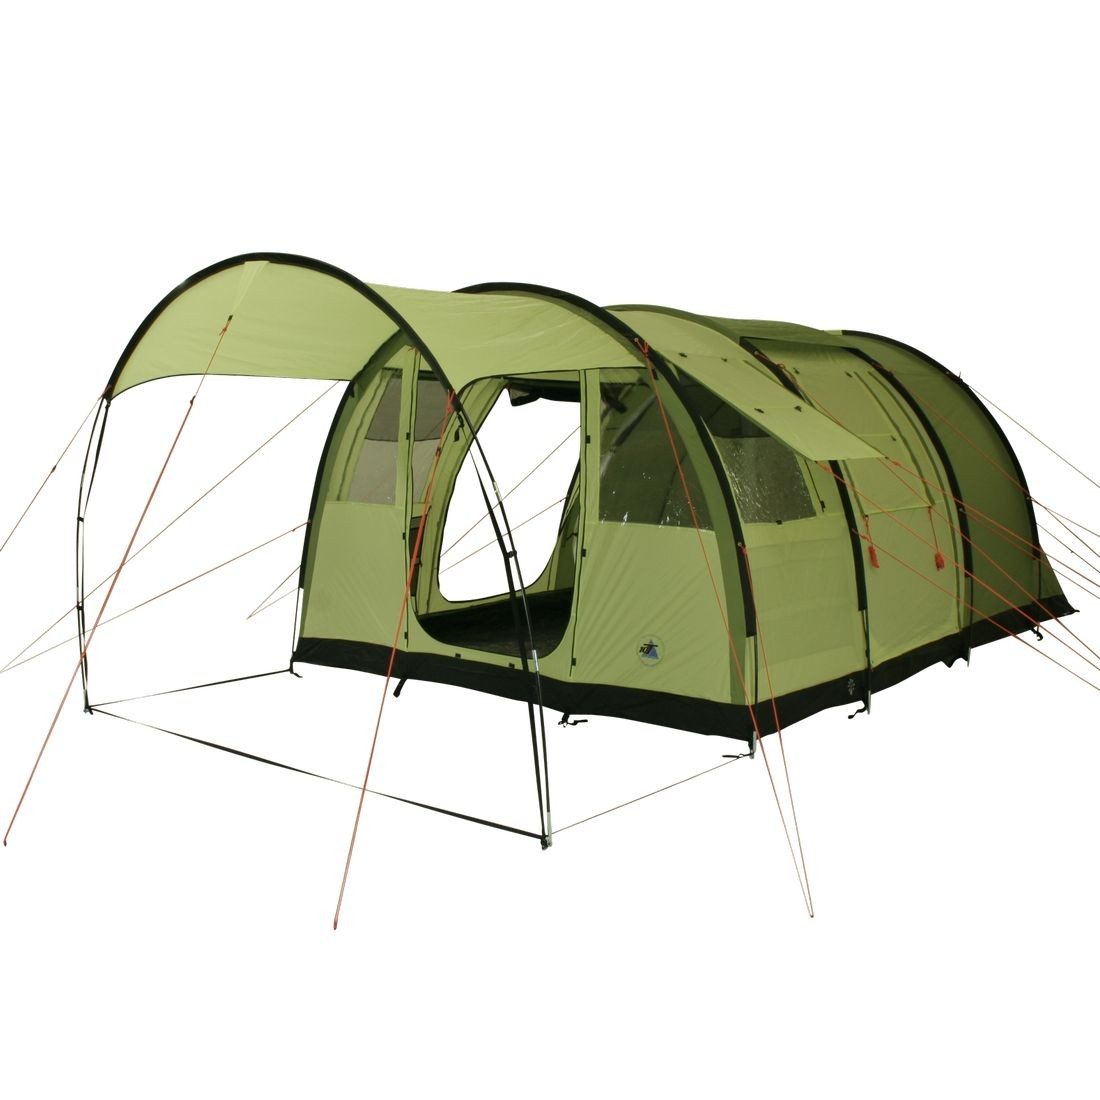 10T Outdoor Equipment - LEIGHTON 4 - Image 1  sc 1 st  C&ing-Outdoor.eu & Buy 10T Leighton 4 - Spacious 4-person tunnel tent with large canopy ...